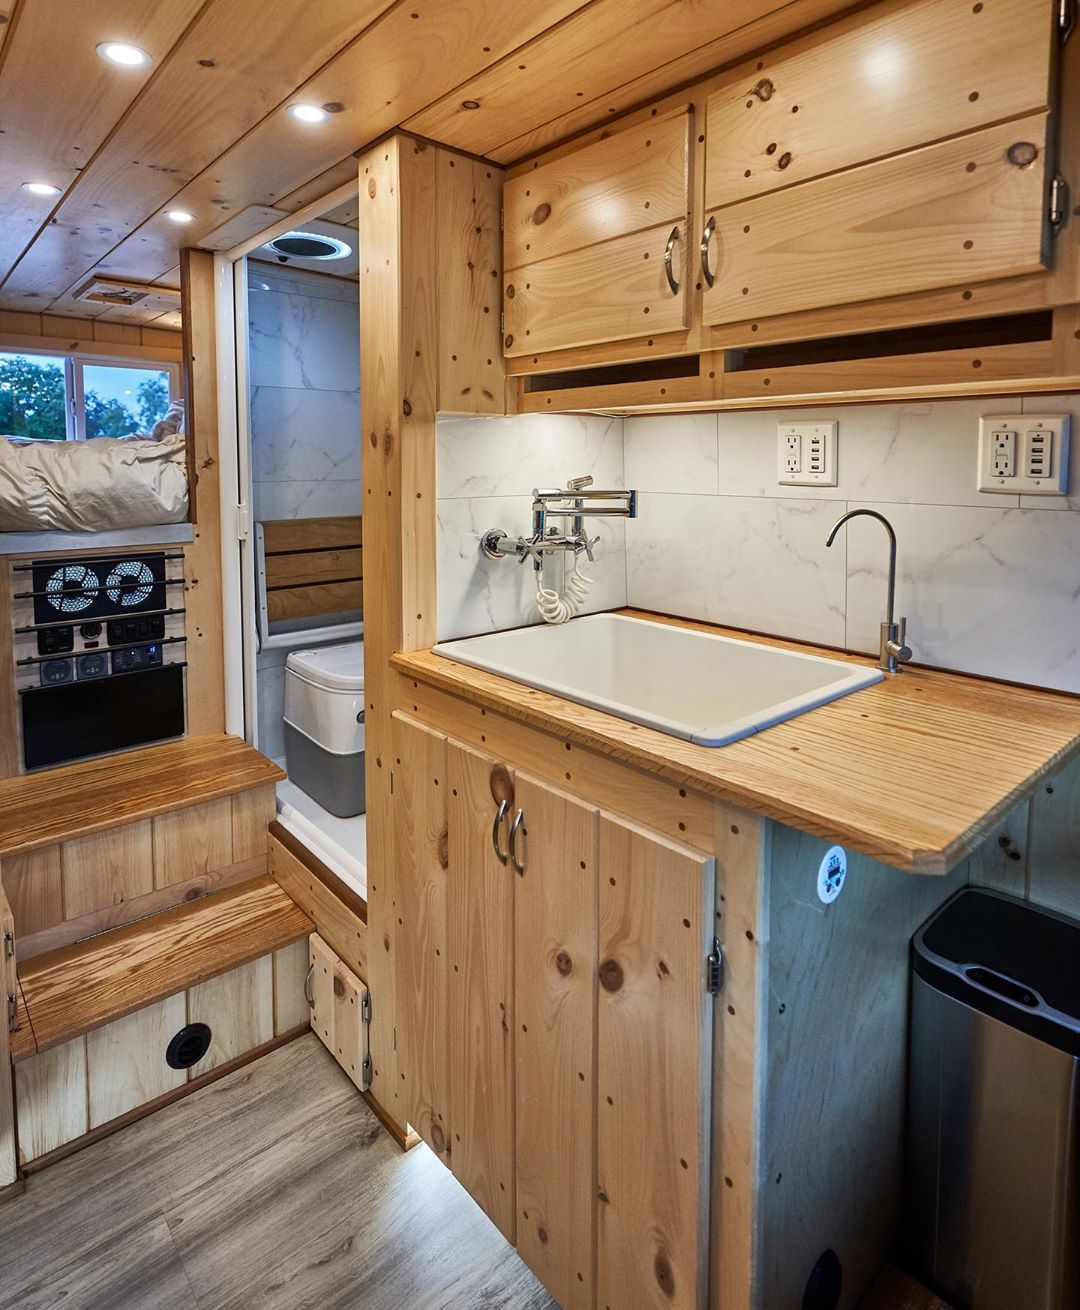 Custom dodge promaster camper van conversion